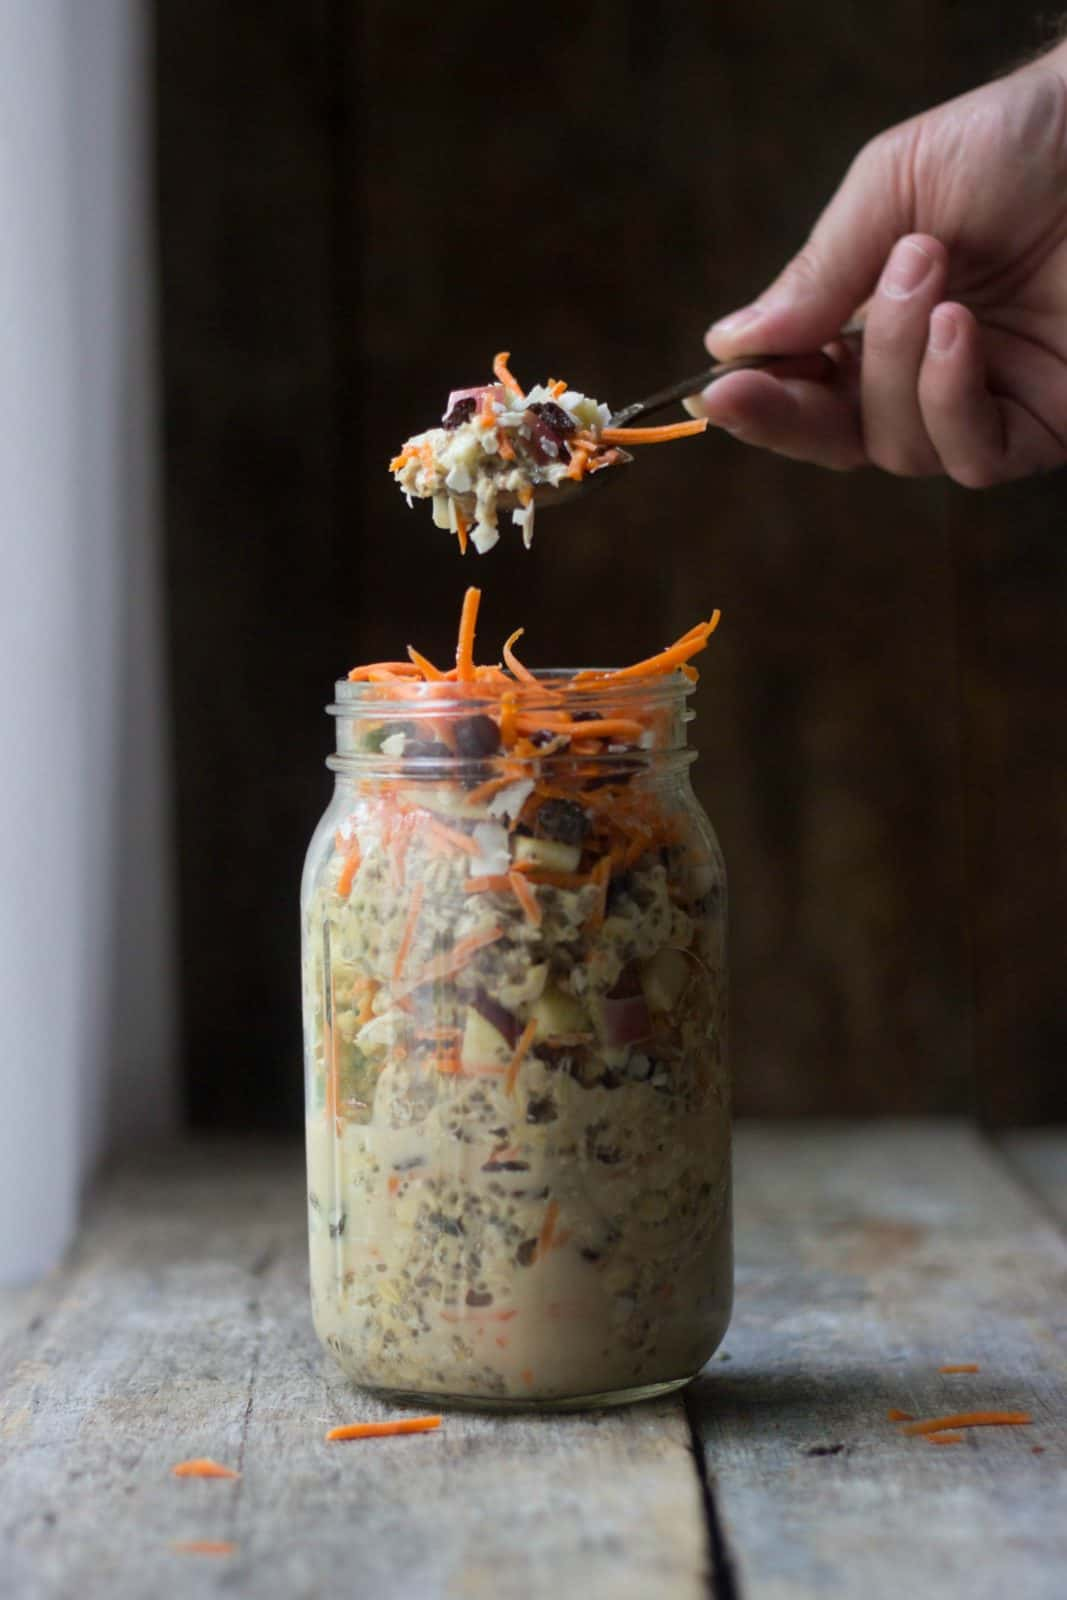 Overnight oats in a clear jar with a spoonful lifting out of it.